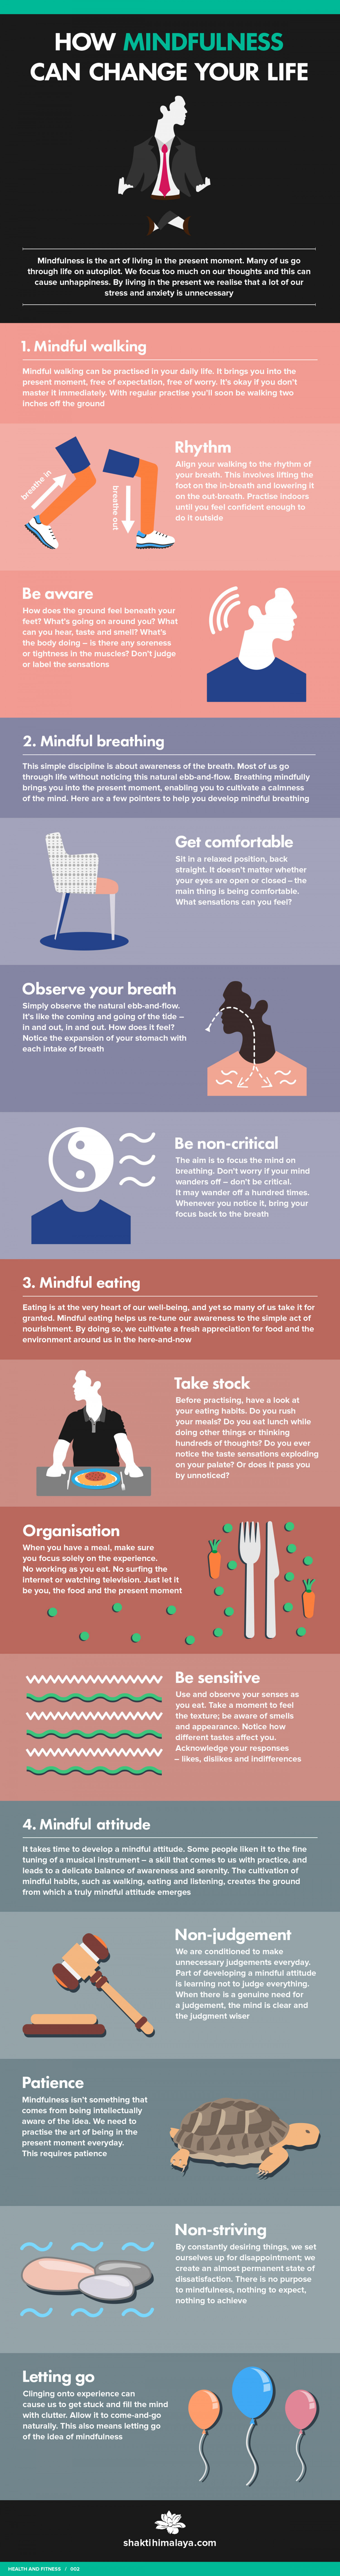 How Mindfulness Can Change Your Life Infographic